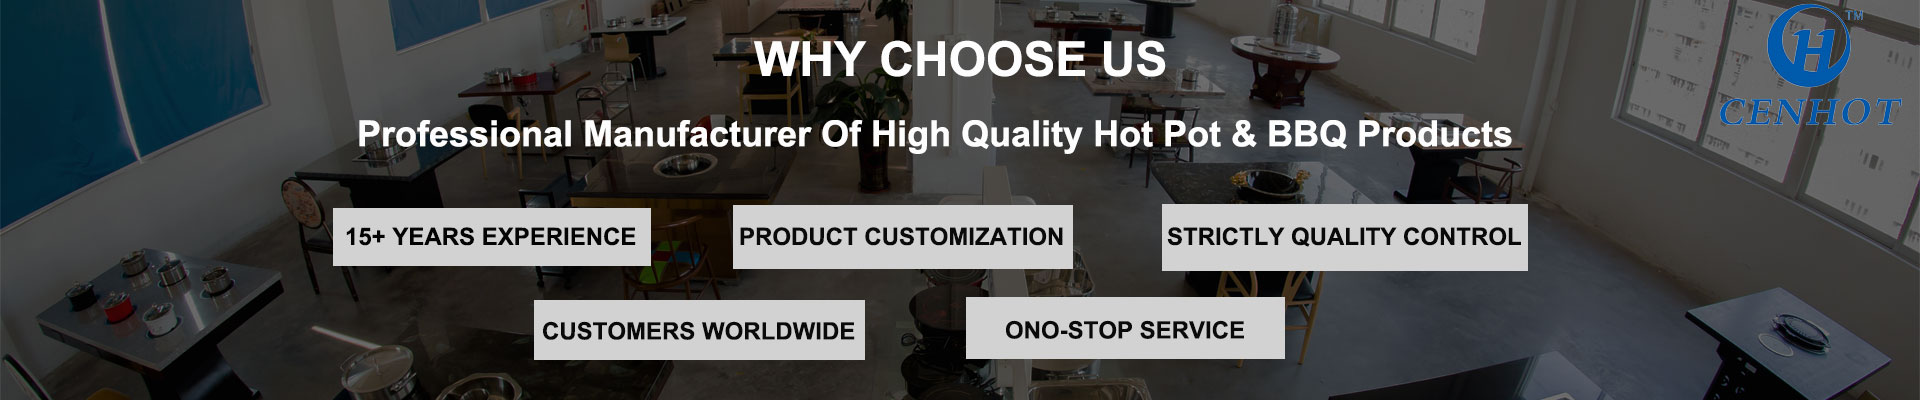 why choose CENHOT